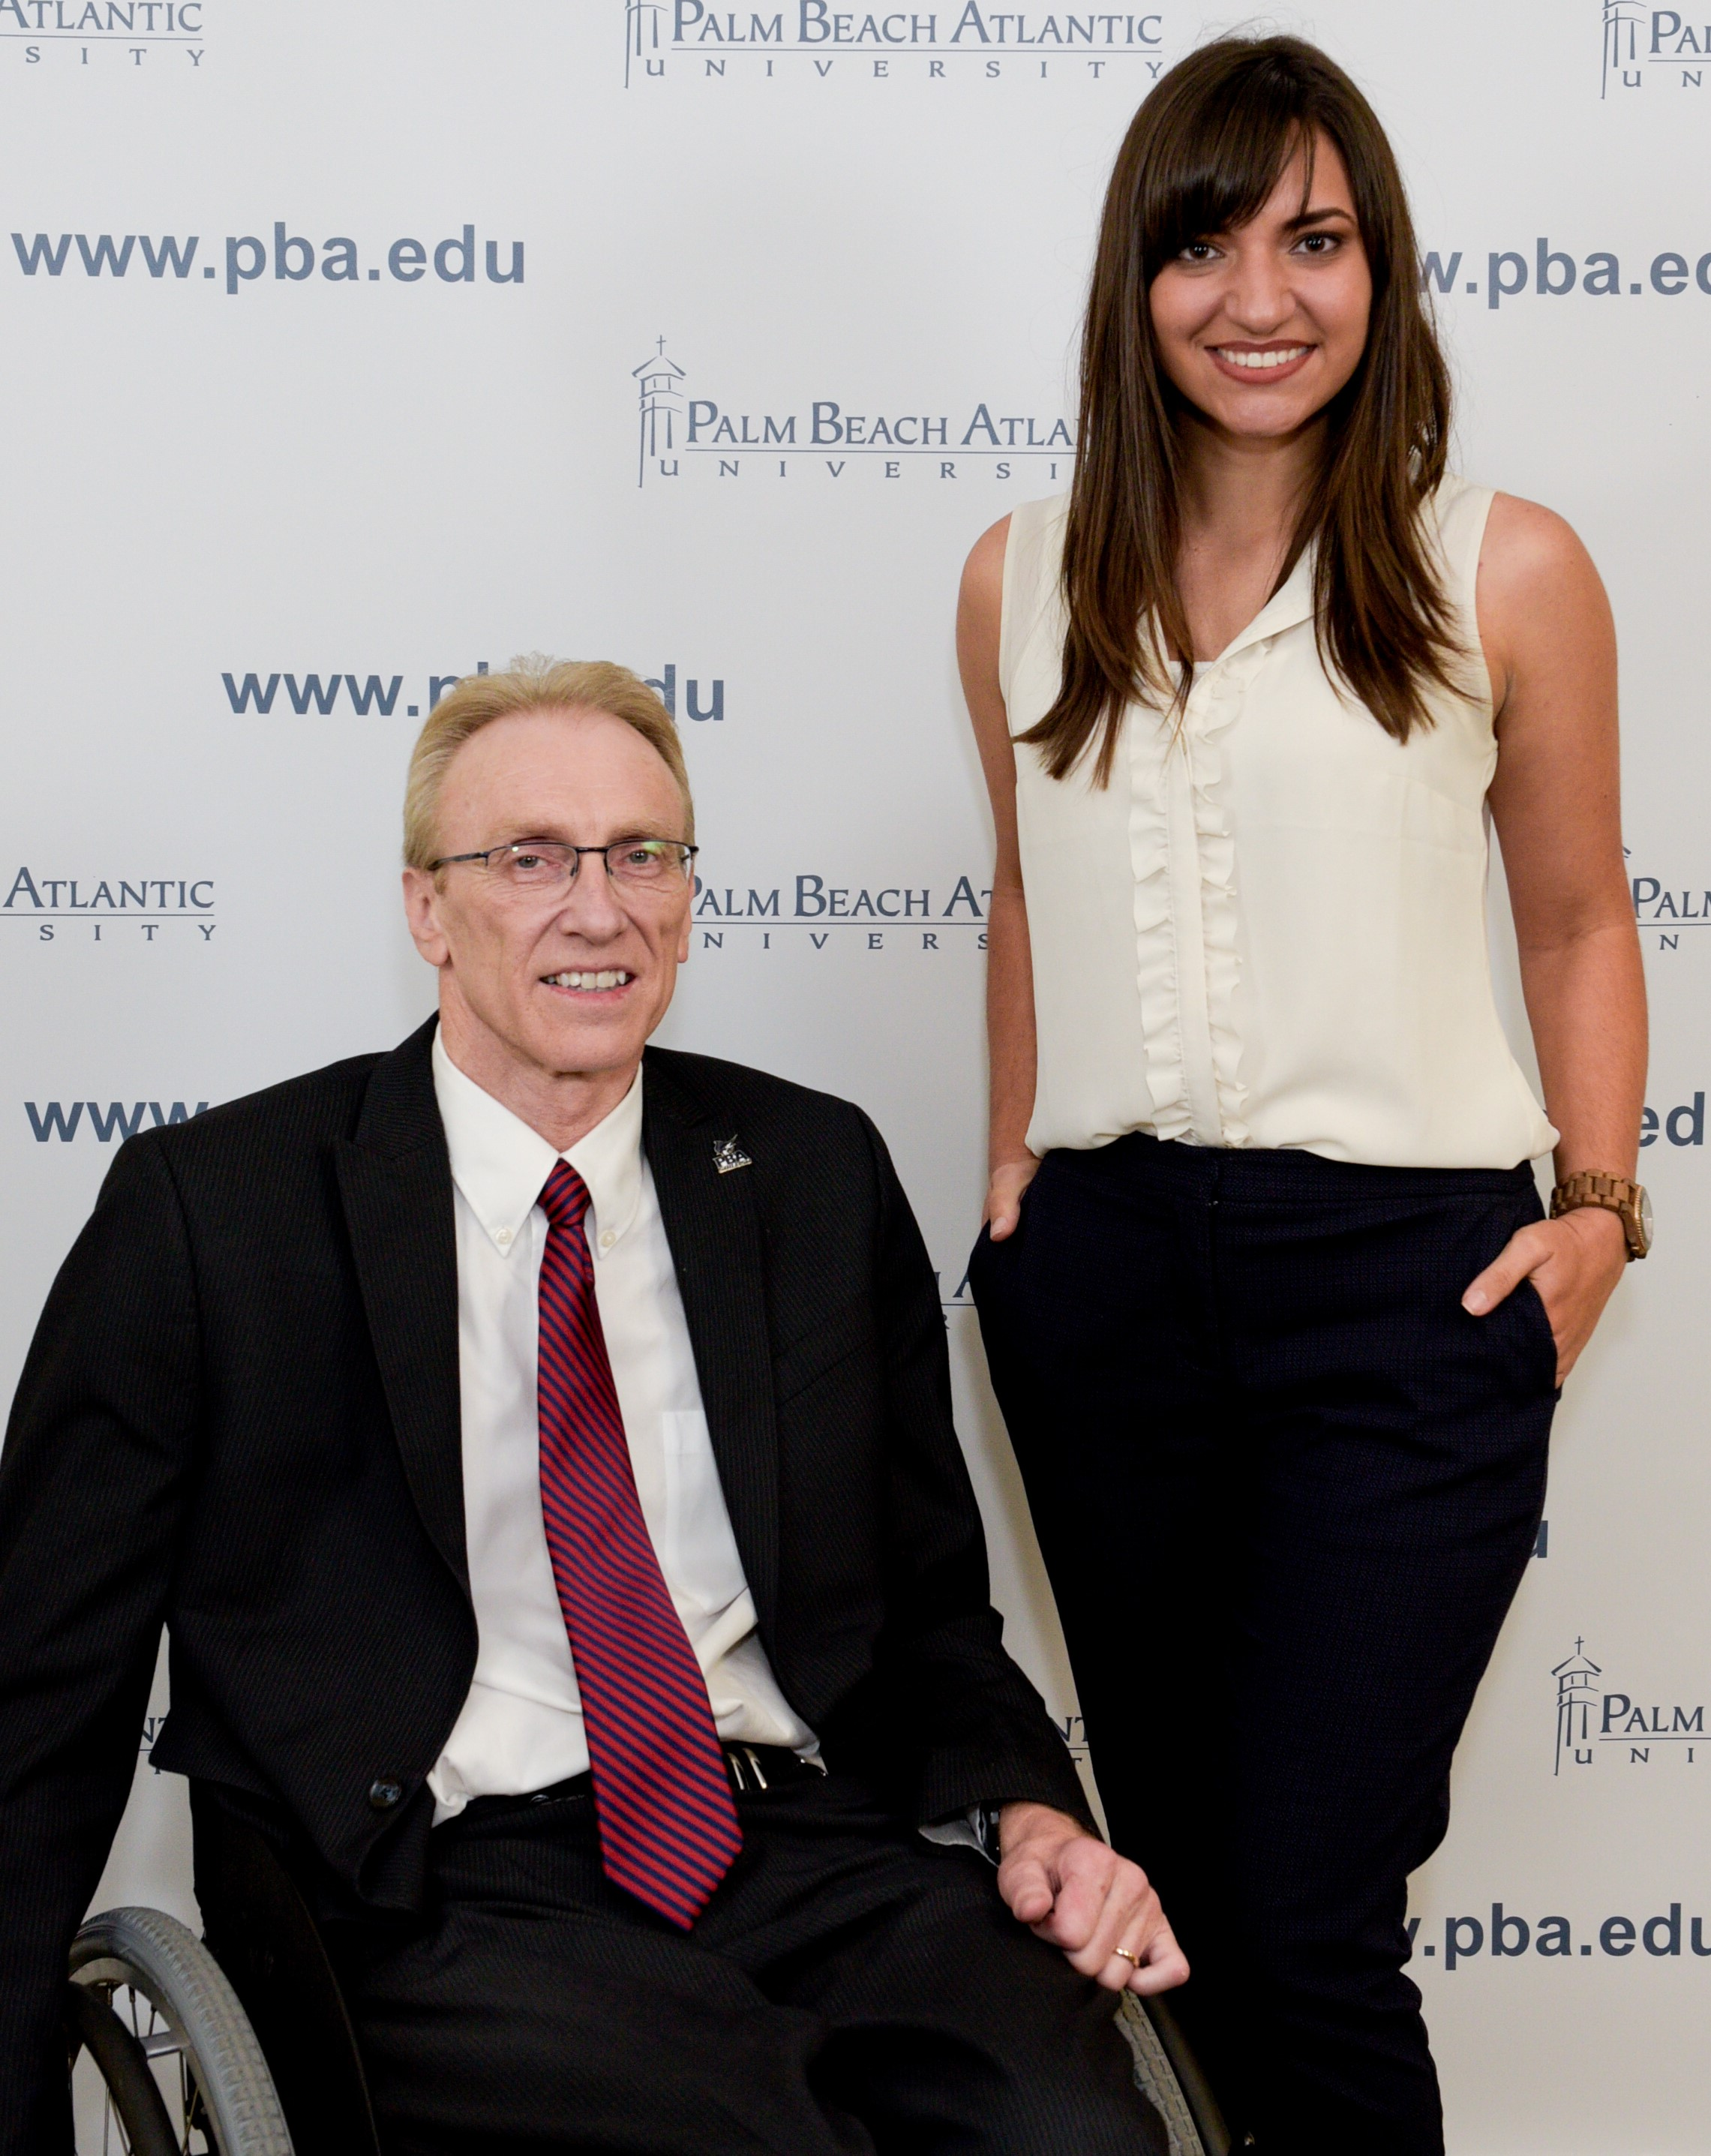 PBA Rinker School of Business Dean Dr. Leslie Turner (left) and senior Eva Bracciale